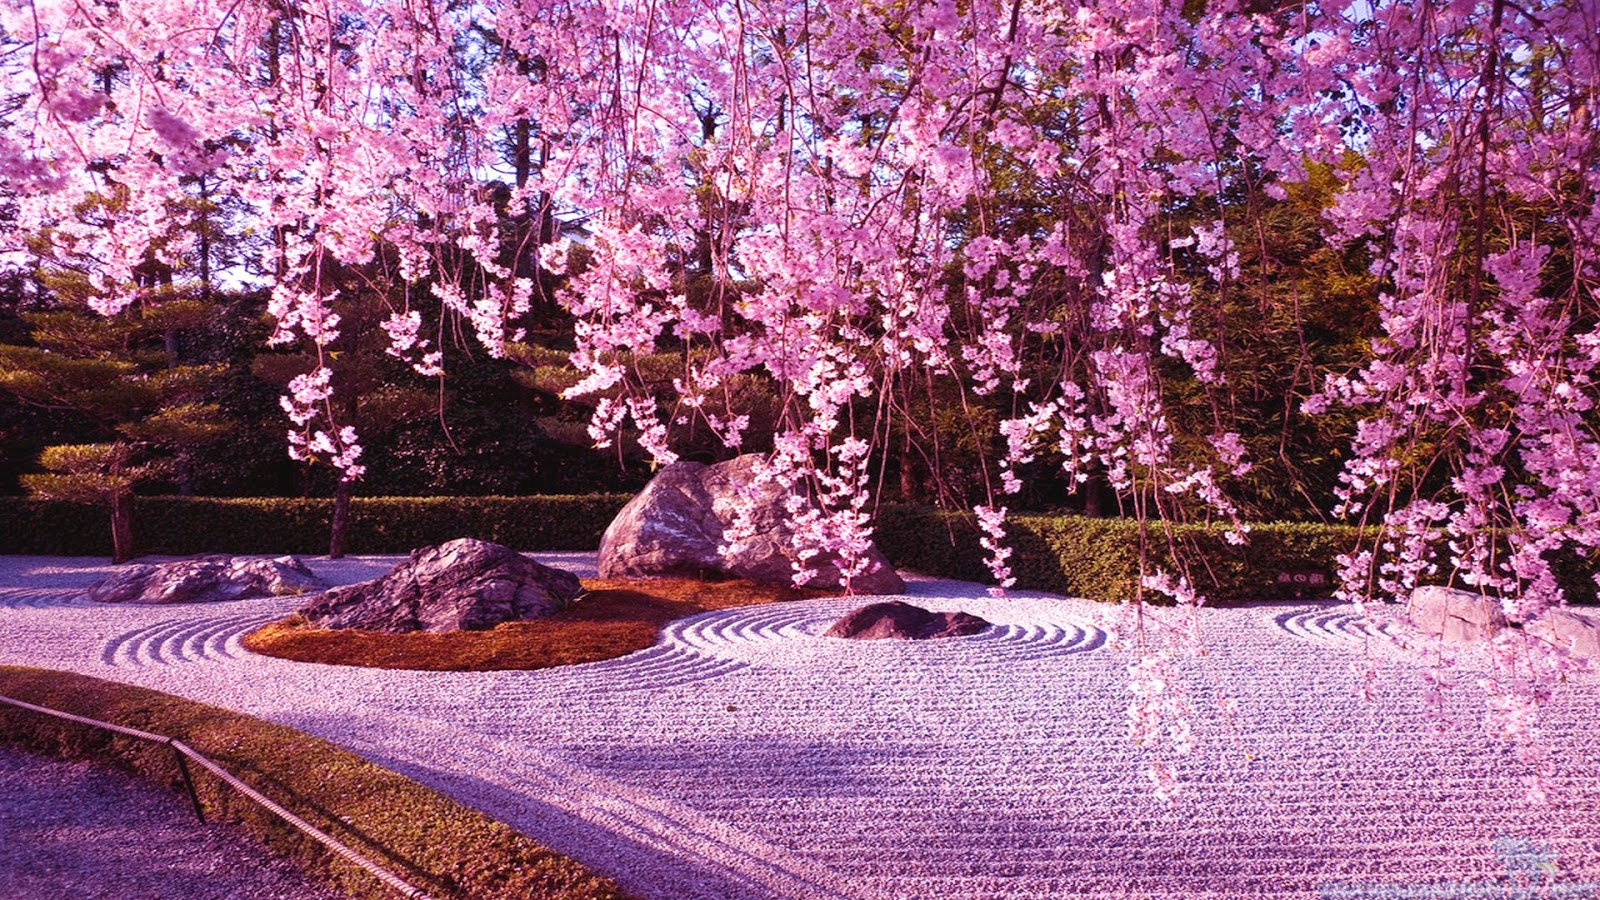 japanese garden cherry blossom paintings - Japanese Garden Cherry Blossom Paintings